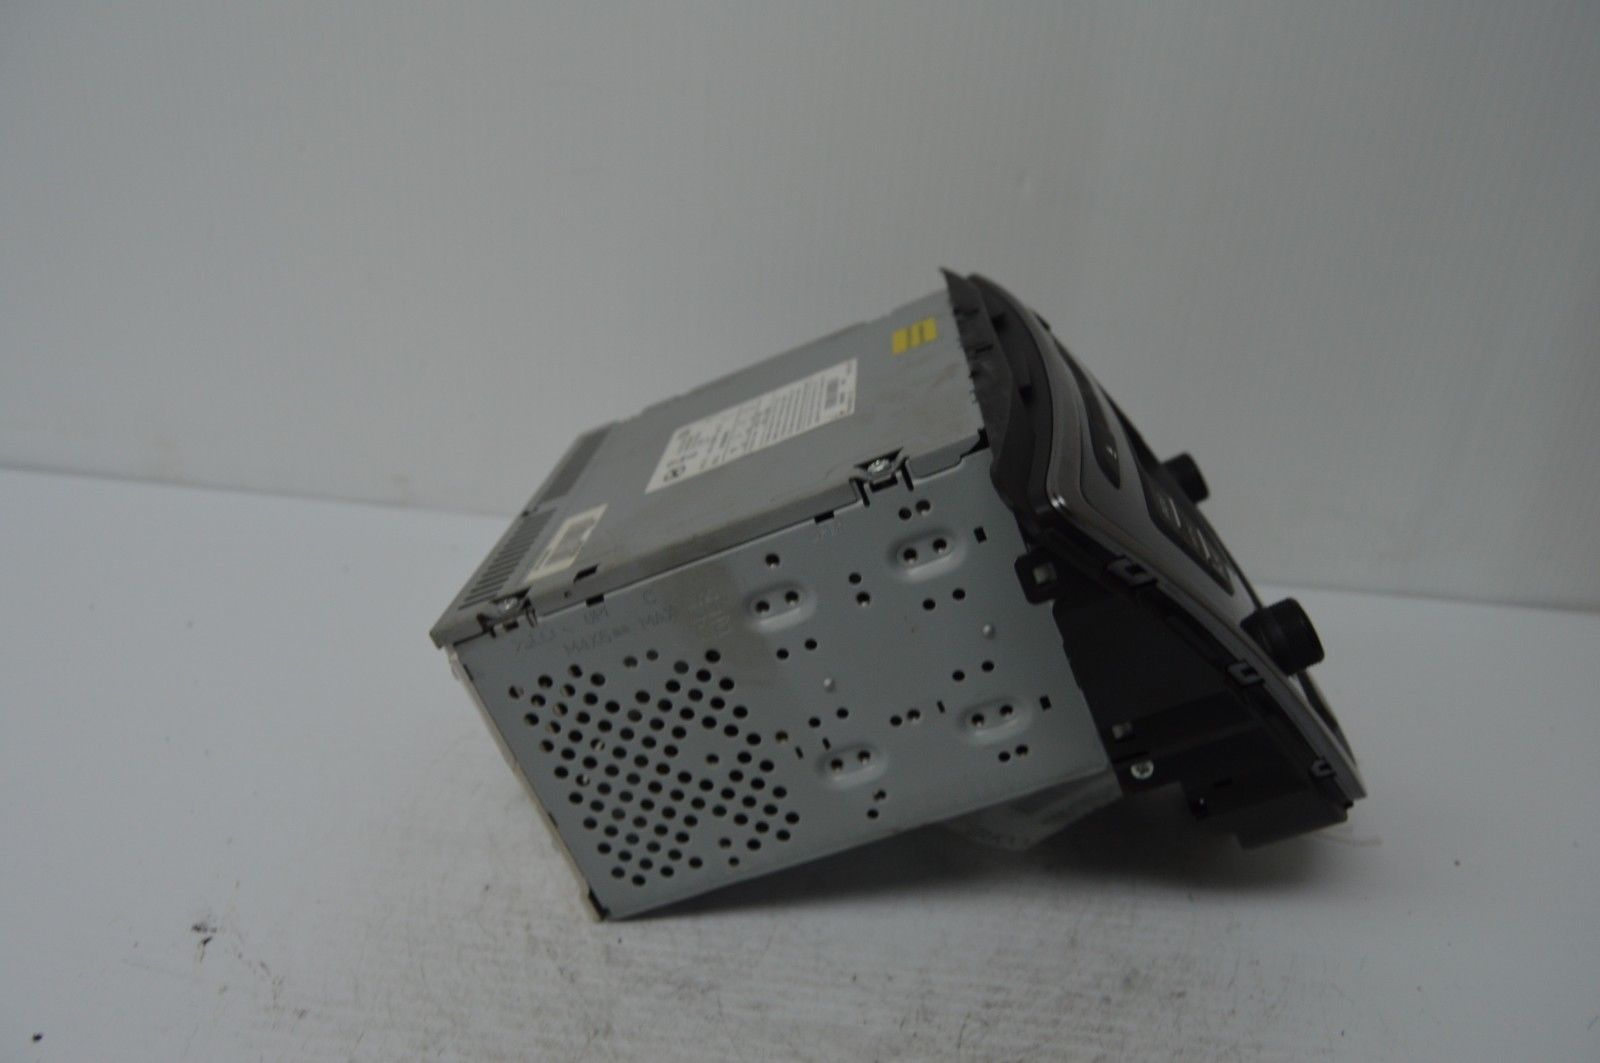 2011-2013 HYUNDAI ELANTRA RADIO CD PLAYER OEM RADIO 96170-3X165RA5 TESTD S60#023